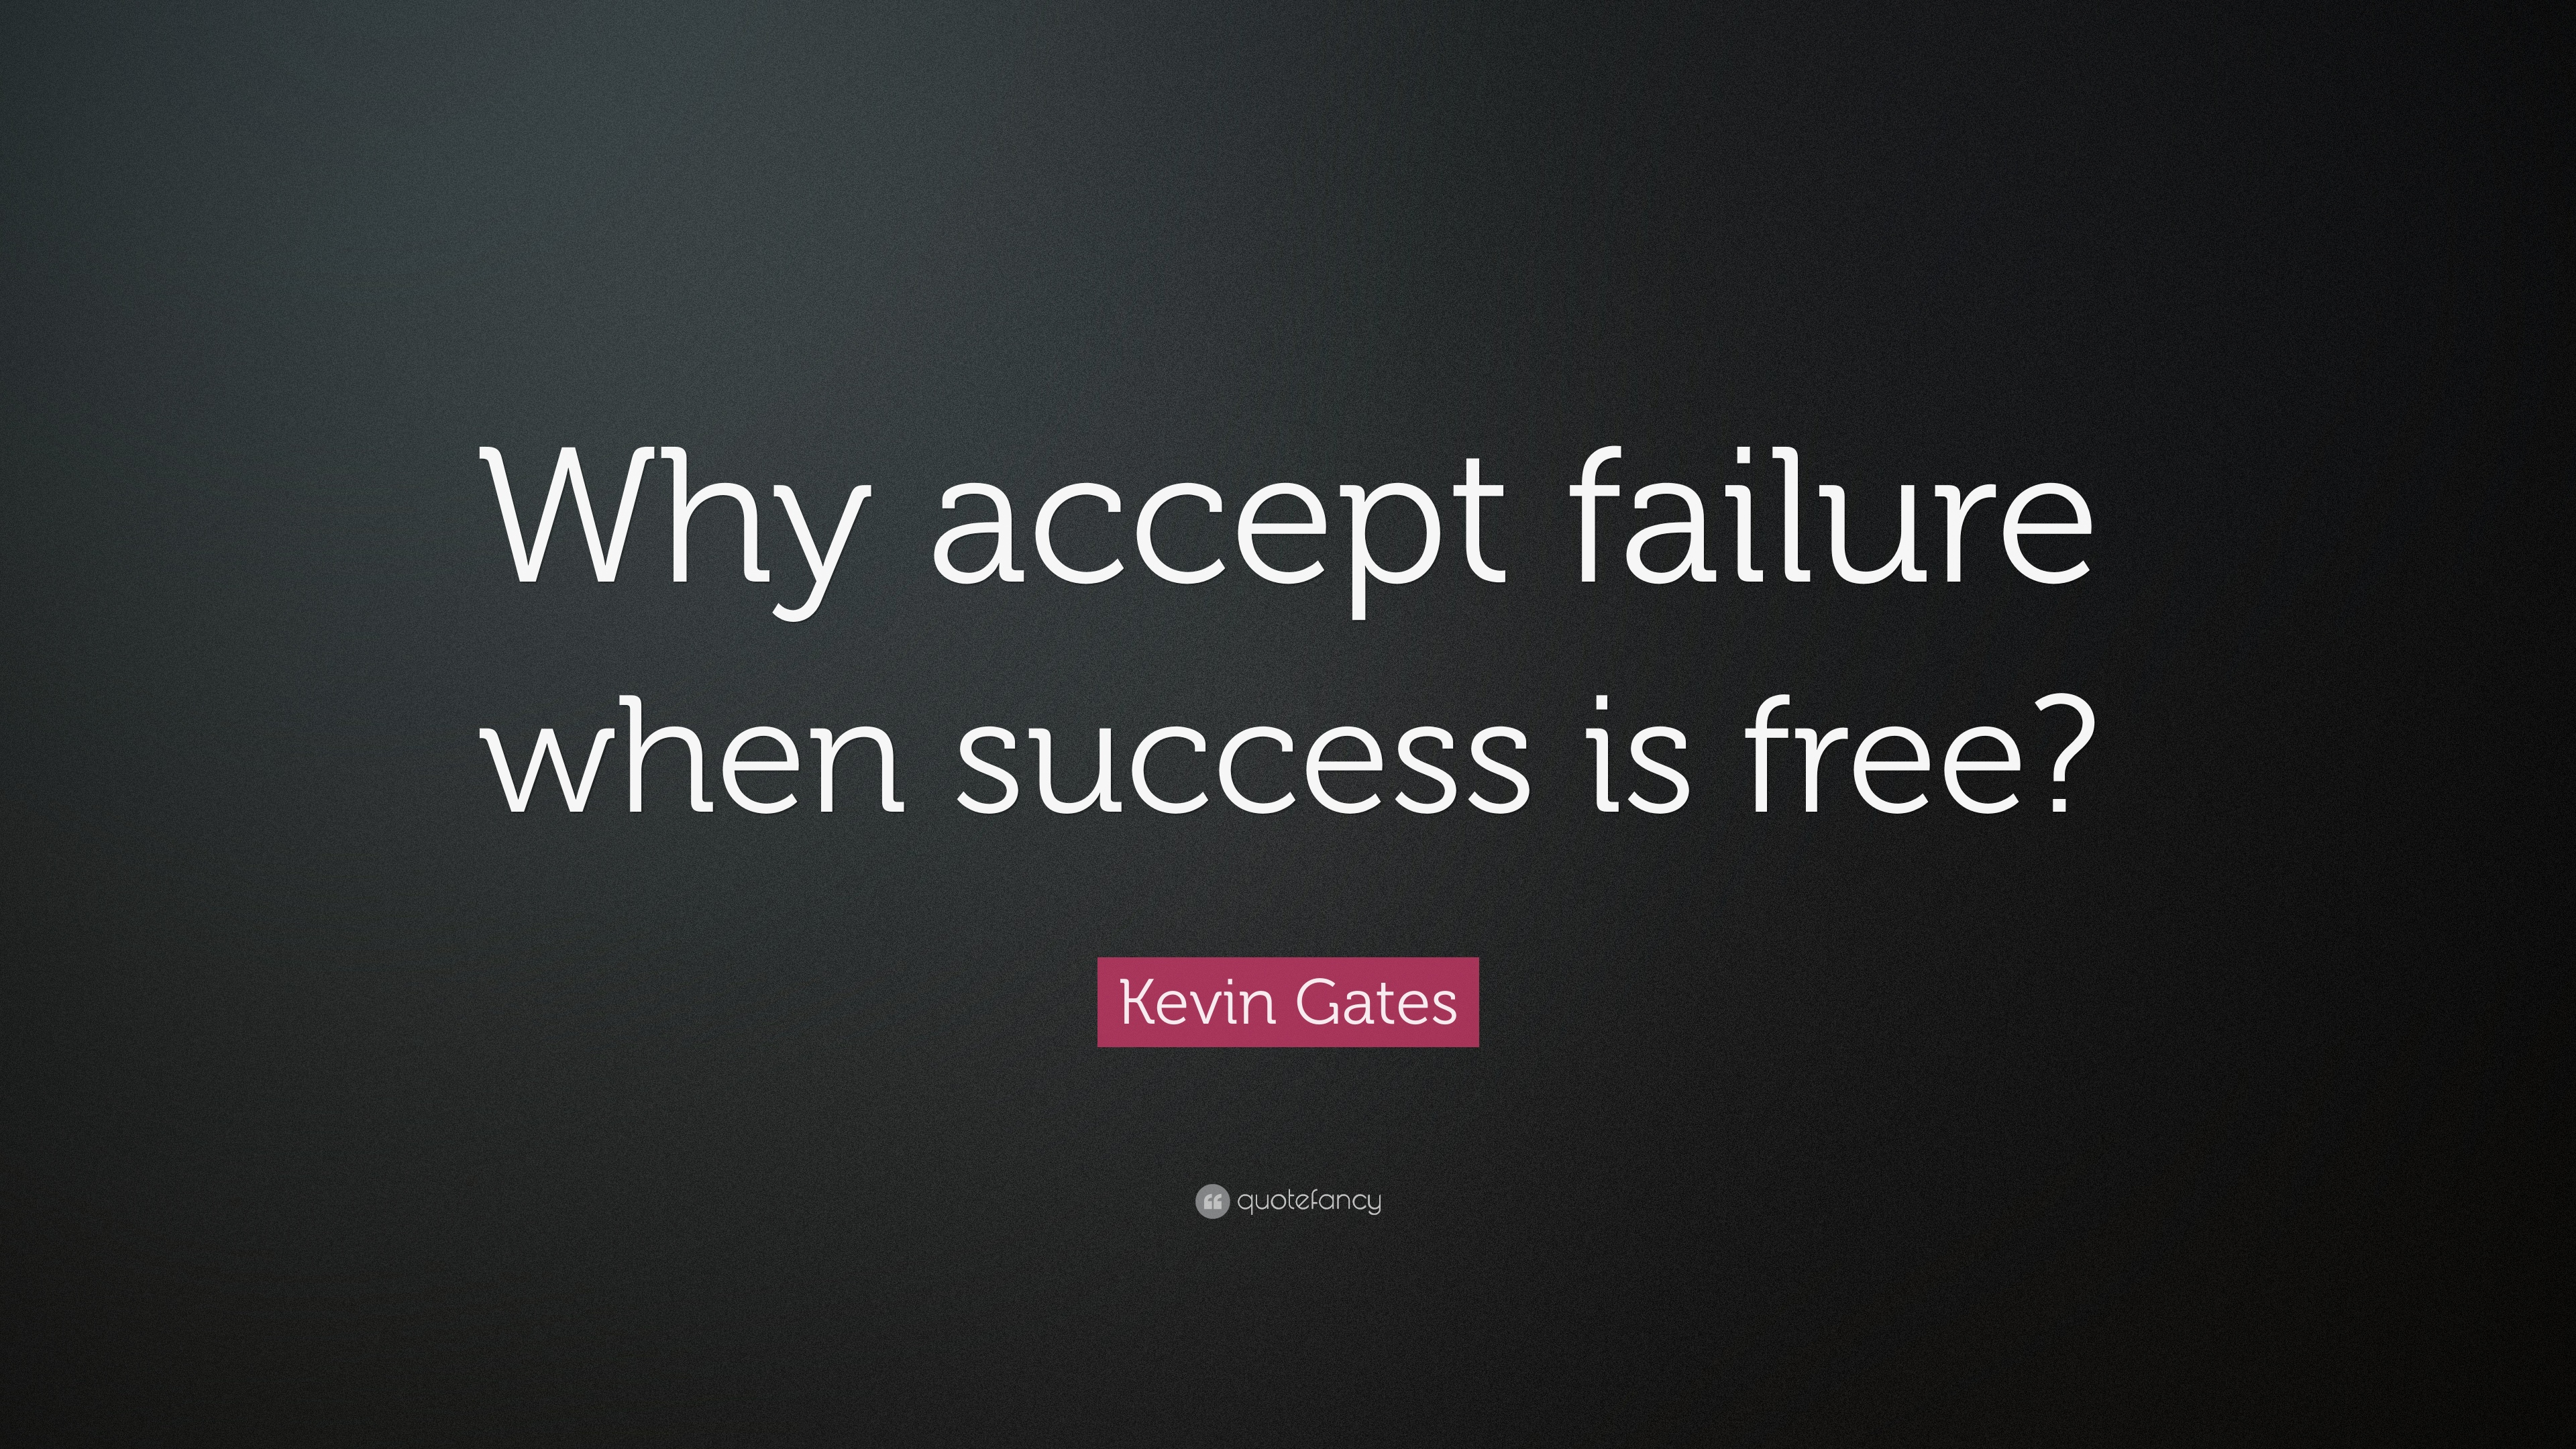 Kevin Gates Quotes Kevin Gates Quotes 5 Wallpapers  Quotefancy